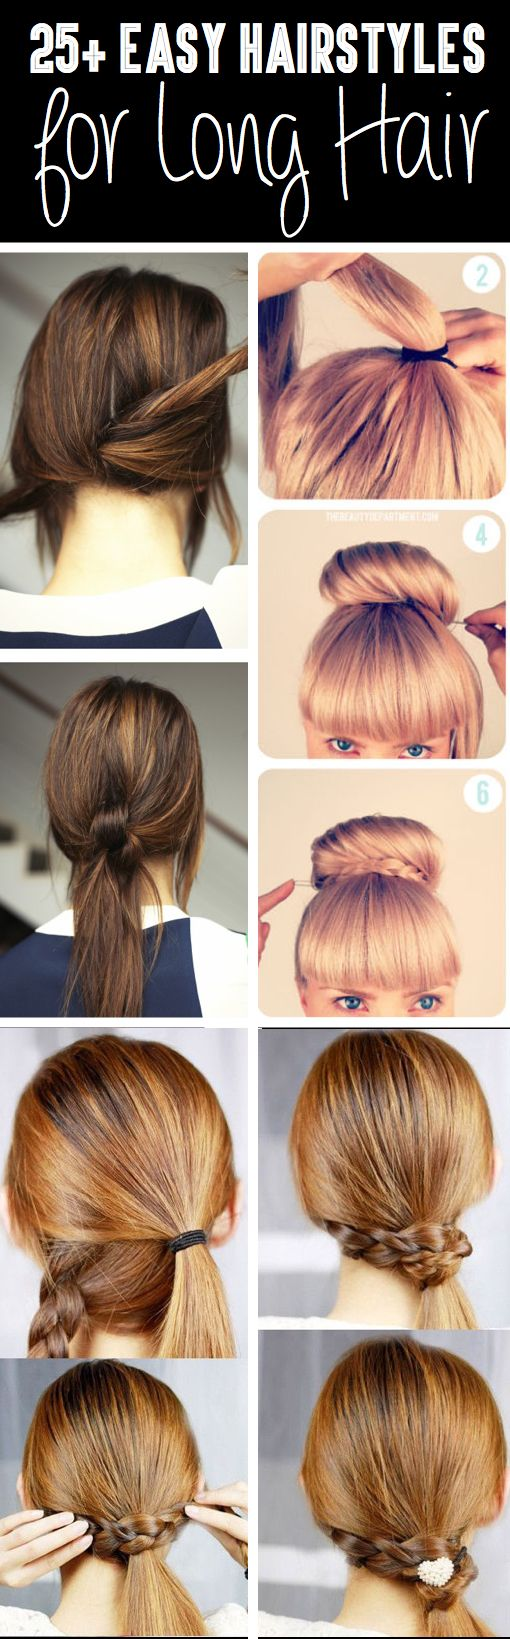 Phenomenal Easy Hairstyles Hairstyle For Long Hair And To Cute On Pinterest Hairstyles For Women Draintrainus